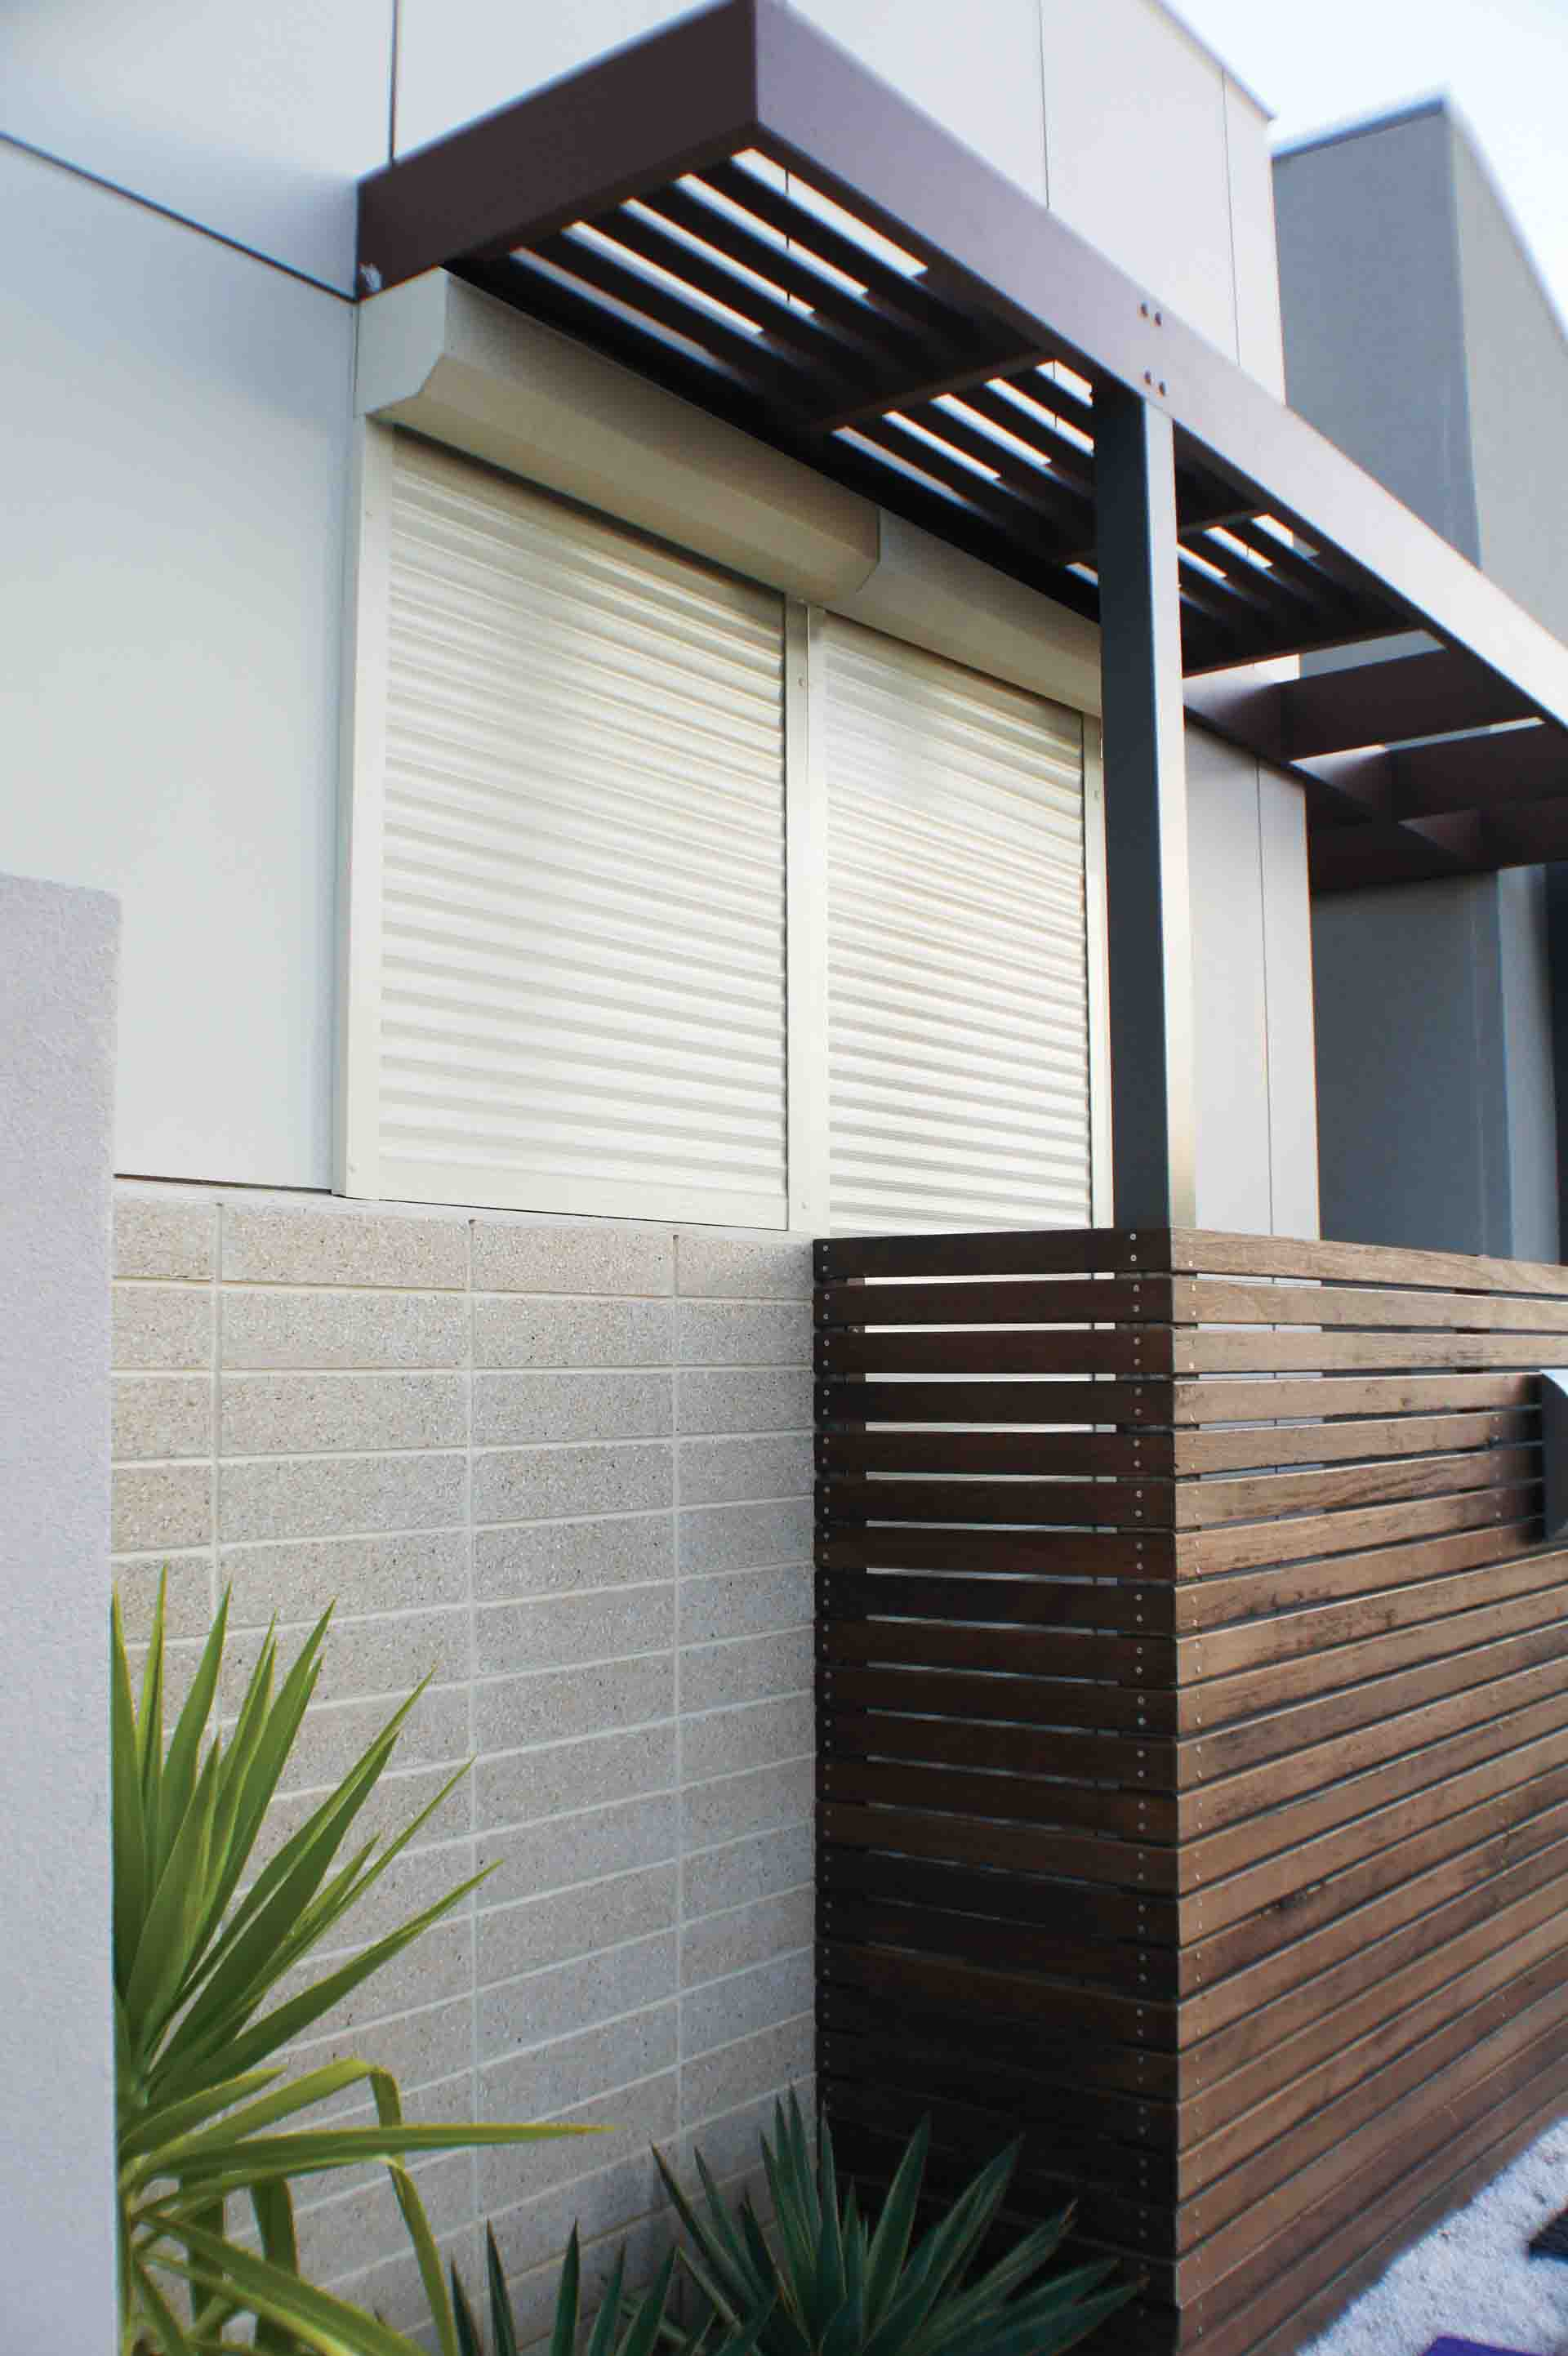 How our roller shutters can save you money - Save money on your power bills with roller shutters from Australian Outdoor Living.